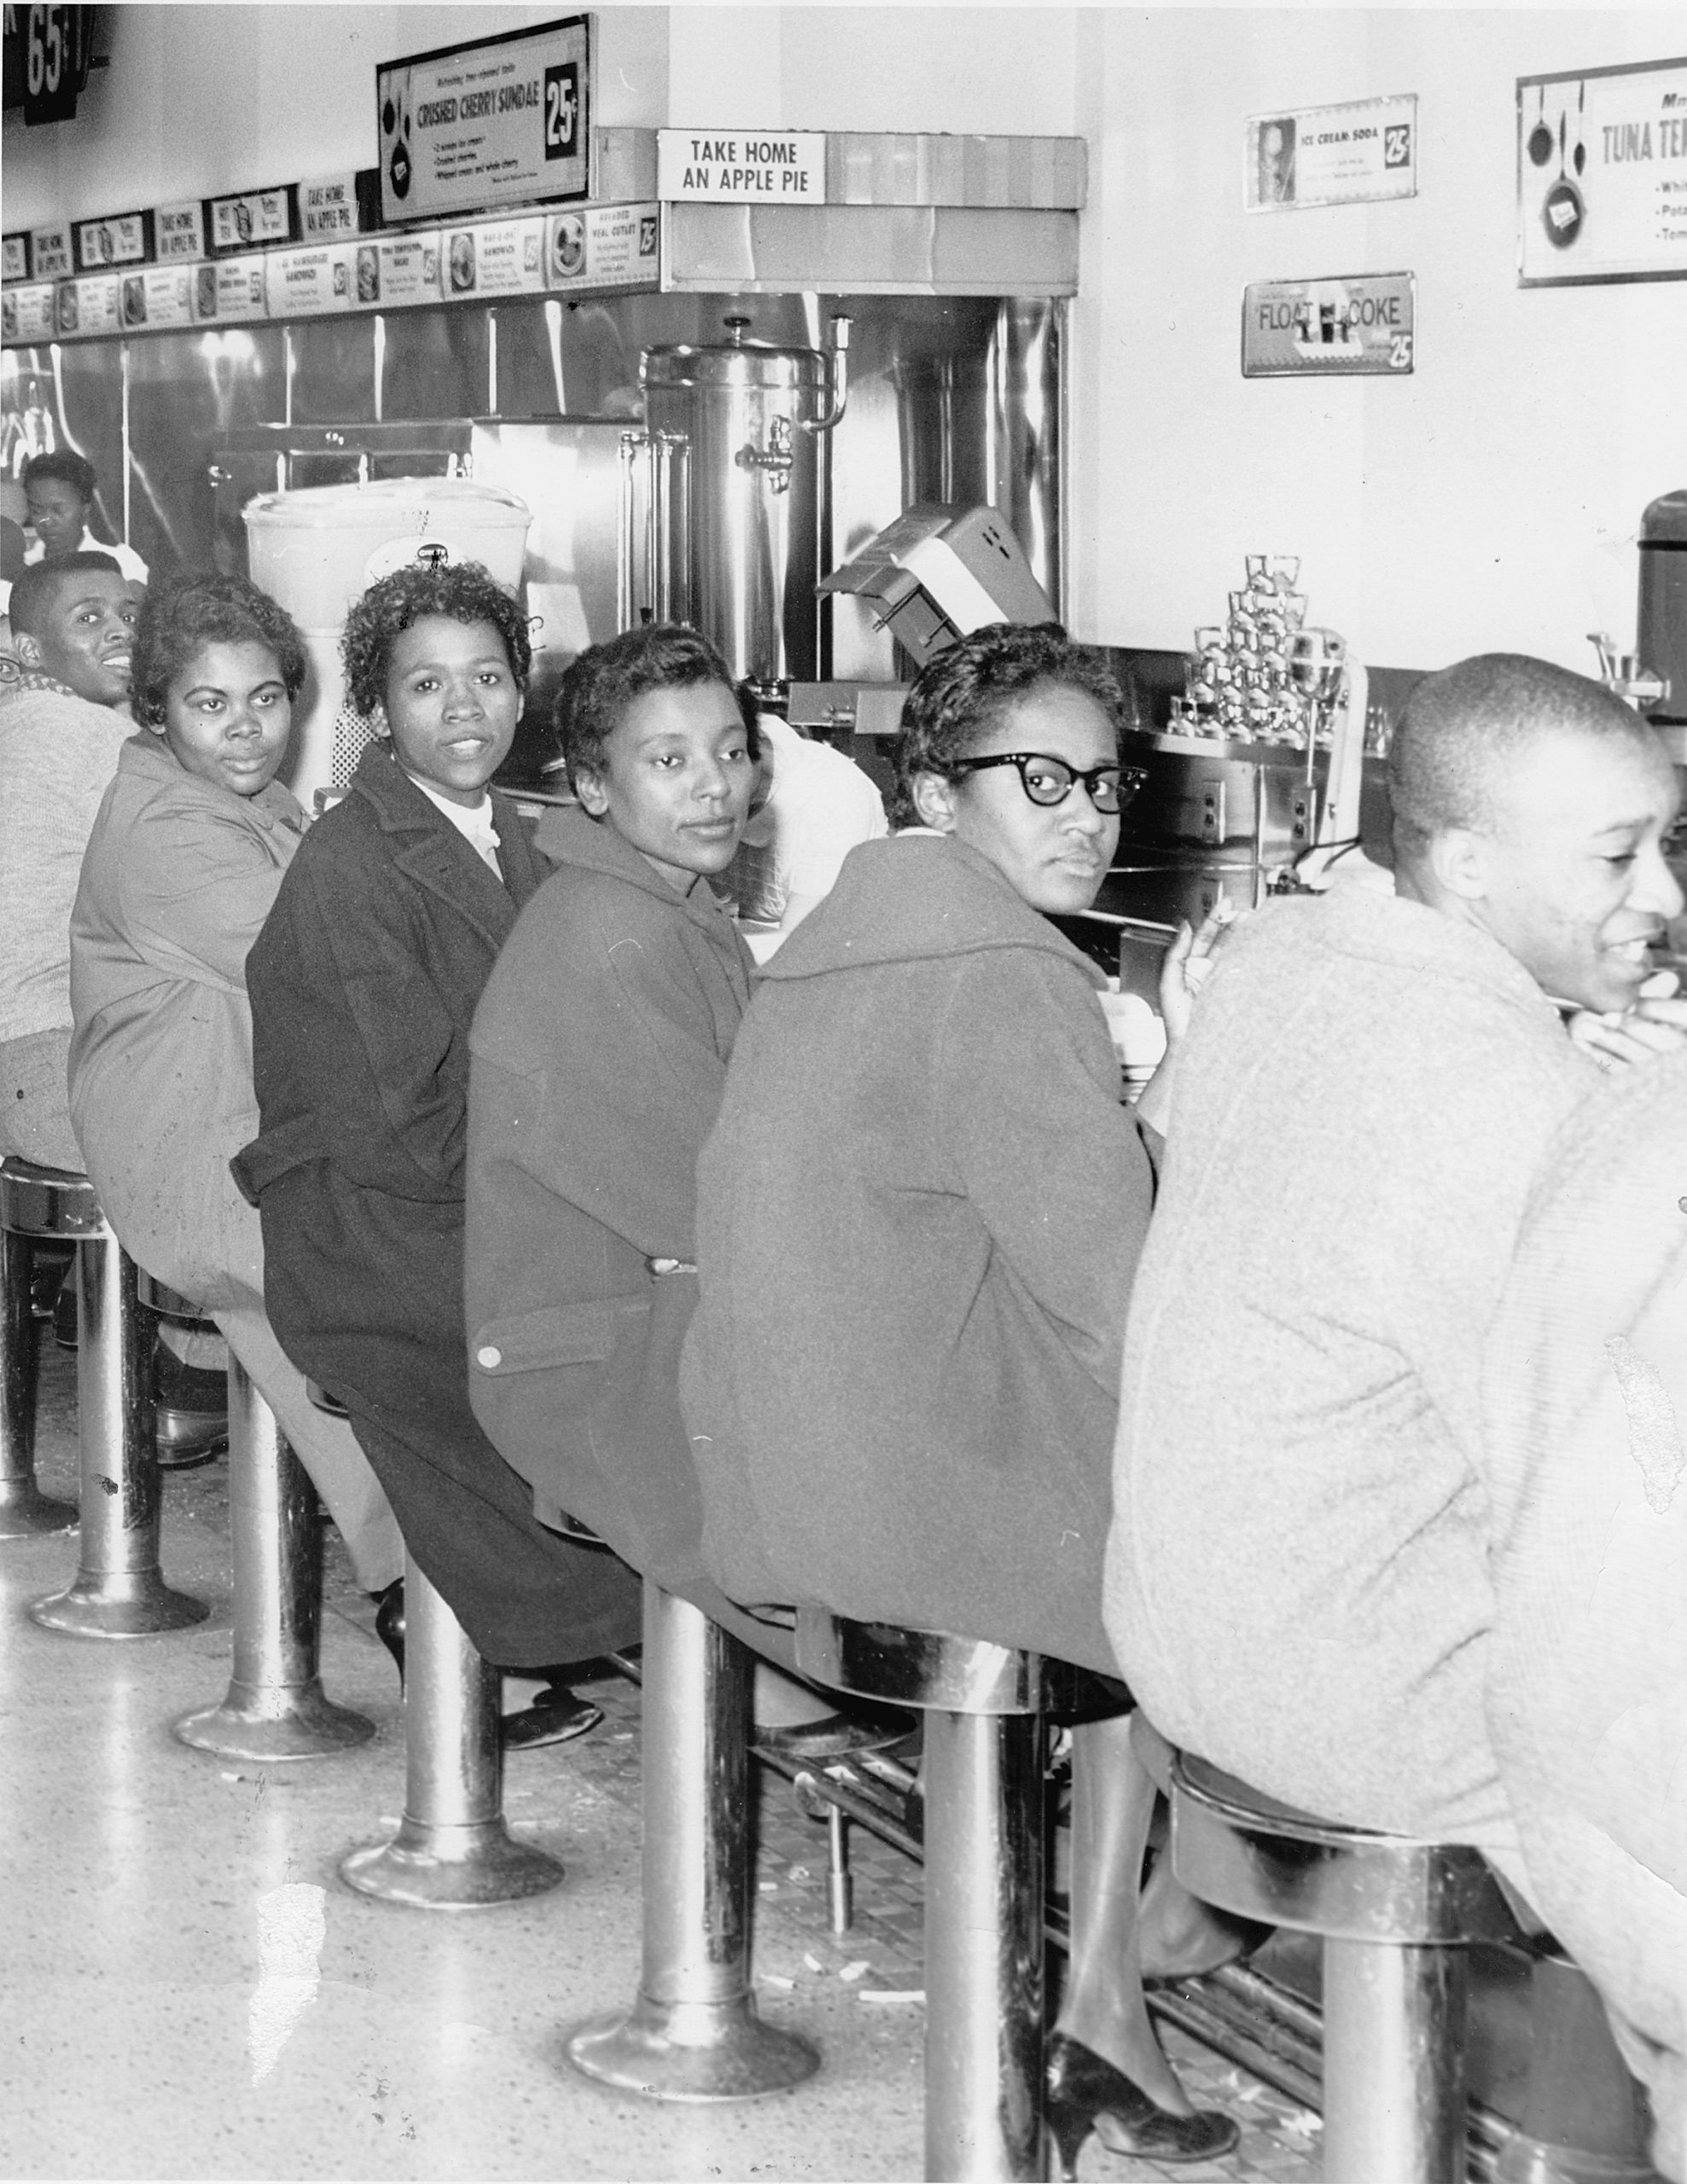 Students from Norfolk's Booker T. Washington High School stage set in at Granby Street's Woolworth's lunch counter. Photo: New Journal and Guide Archives